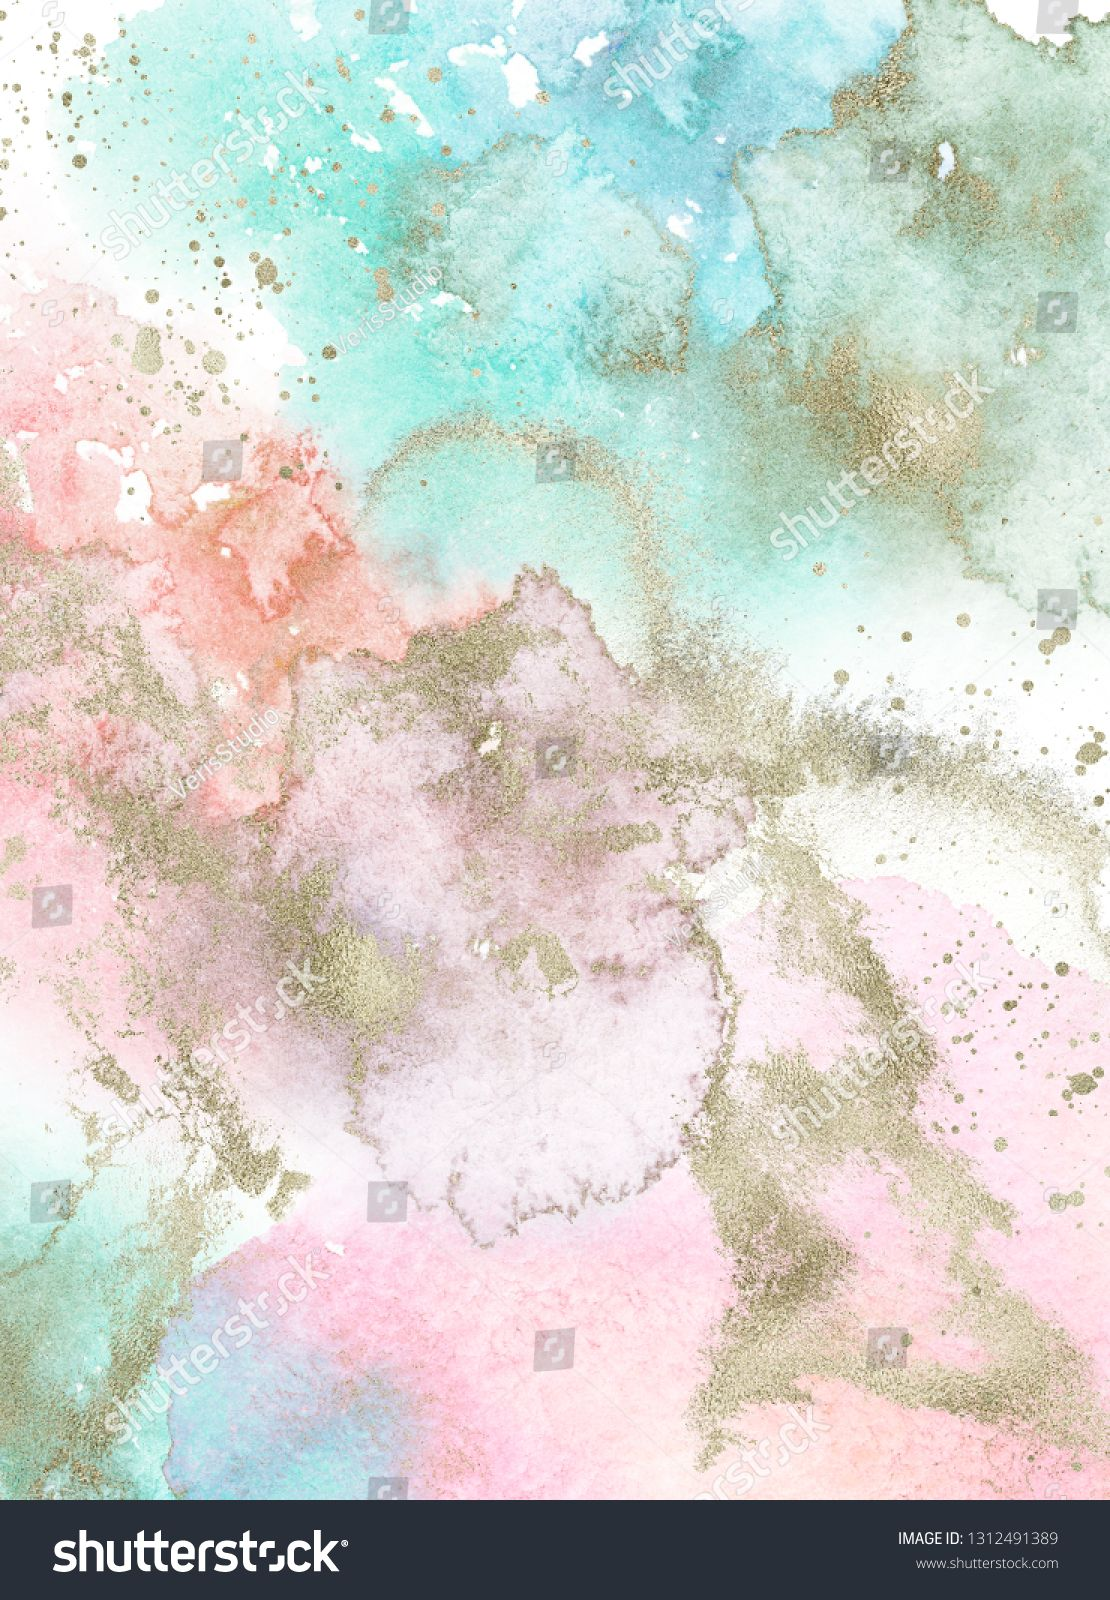 Gold Pink White Blue And Turquoise Watercolor Texture Design